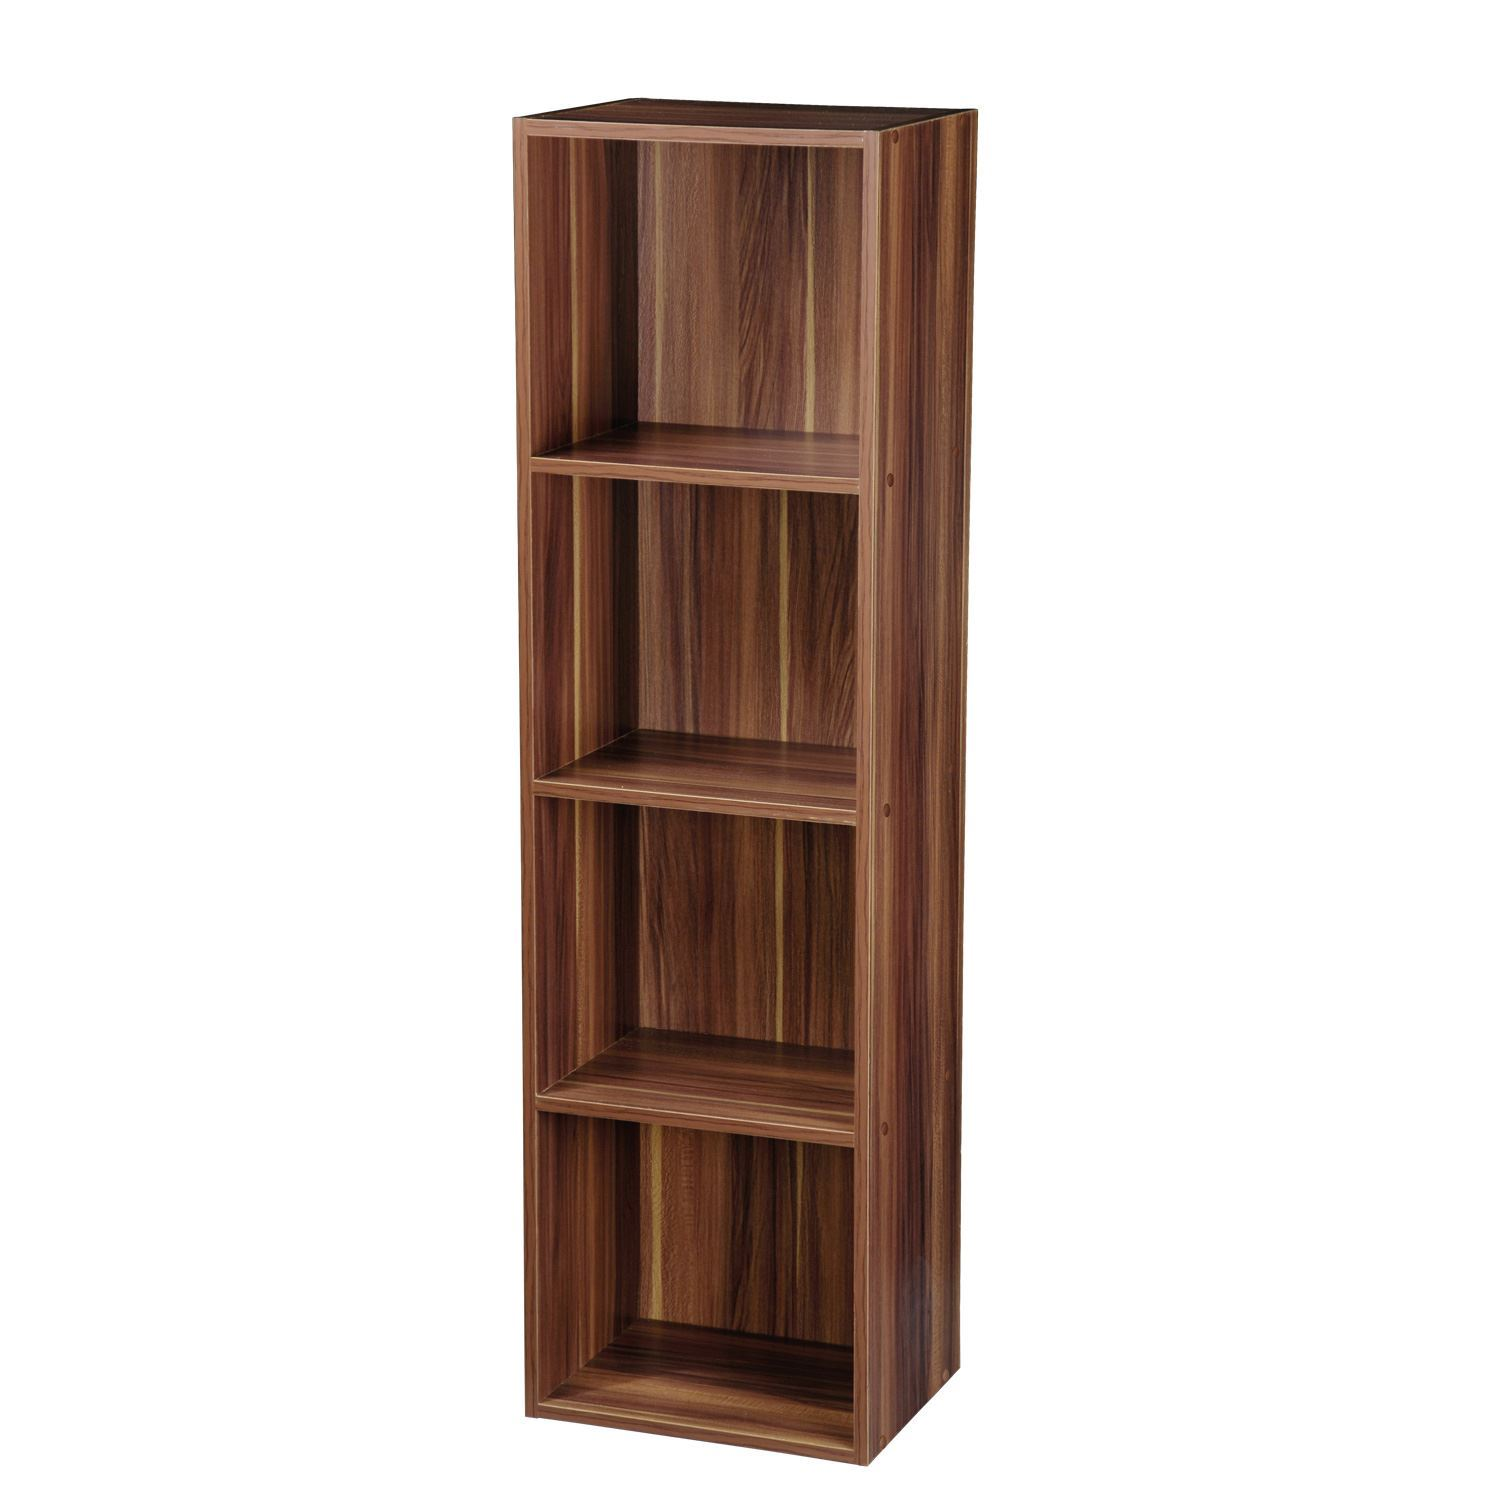 Wood Storage Cabinet With Shelves ~ Tier wooden bookcase shelving display storage wood